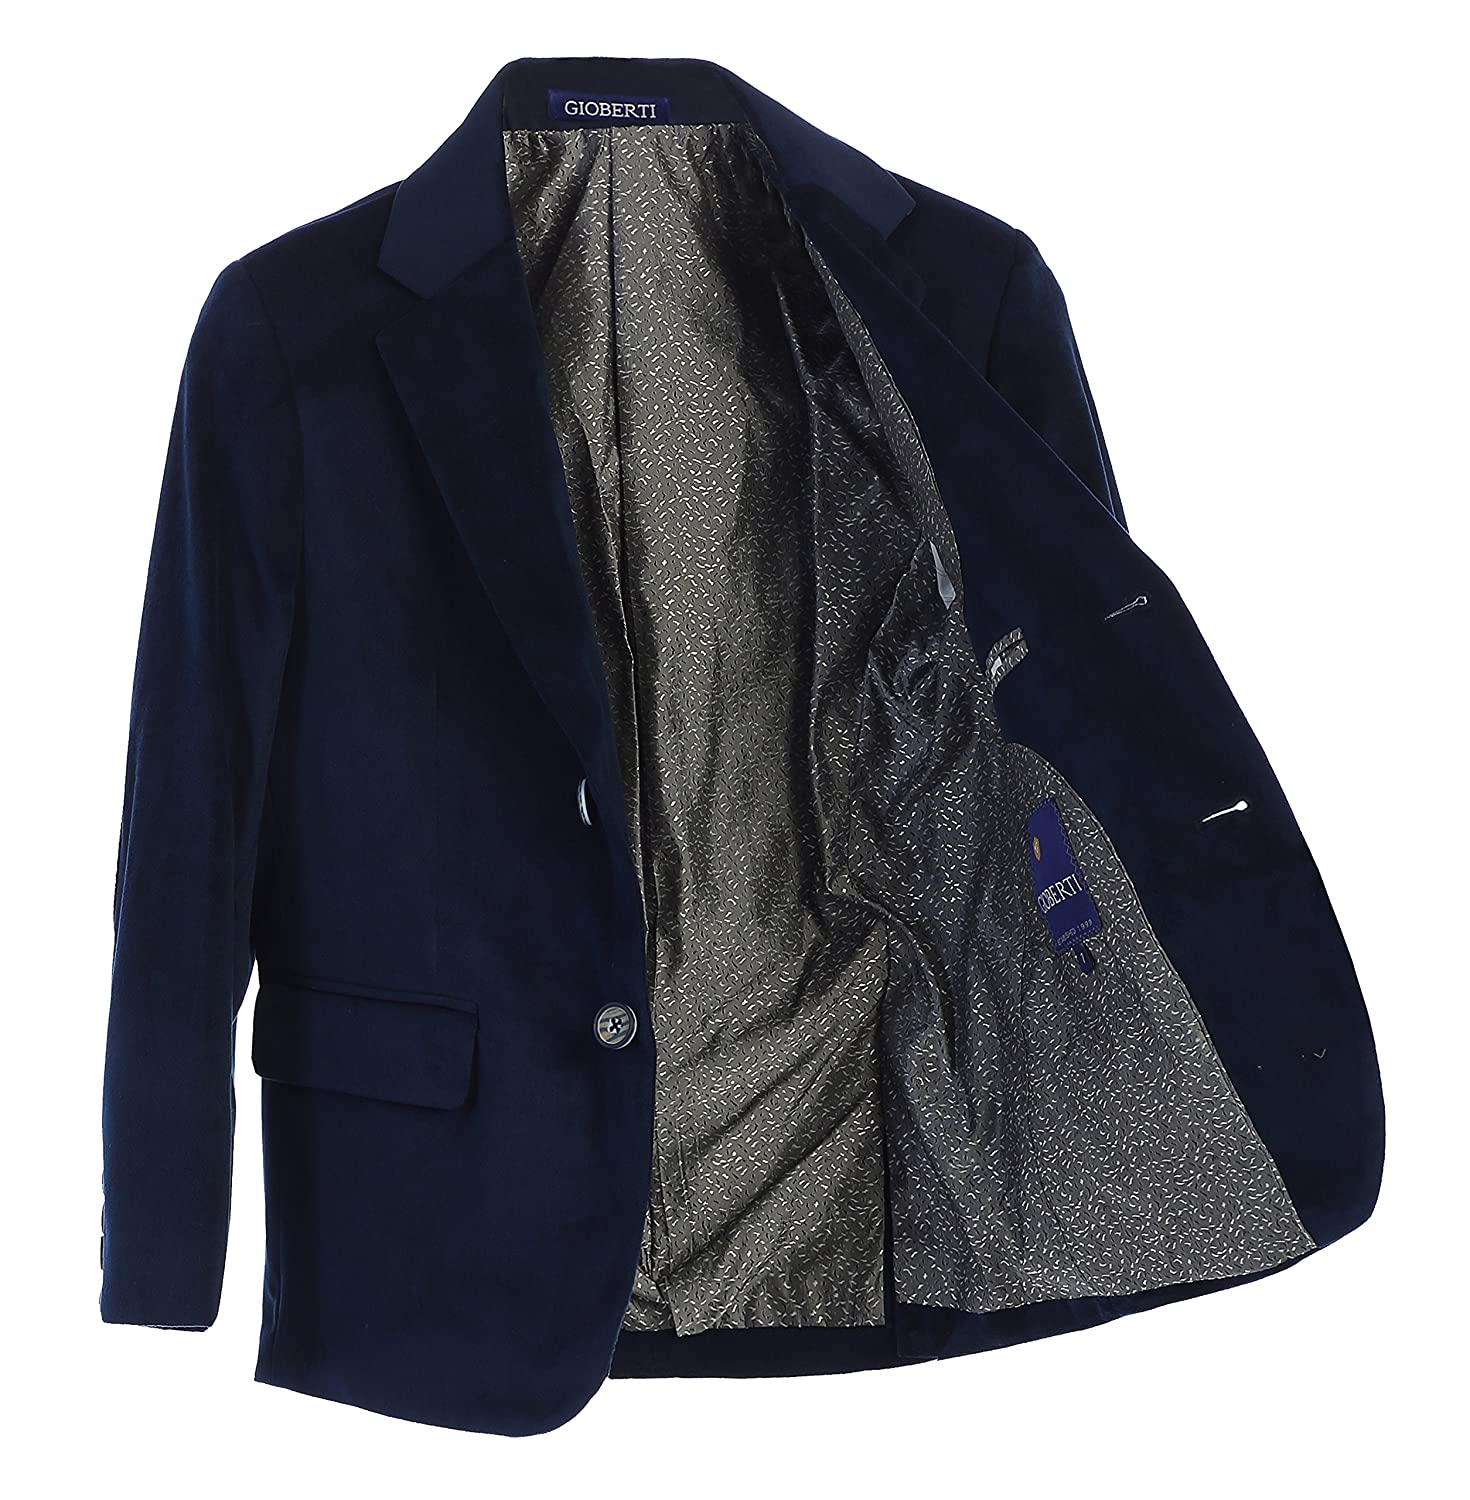 Gioberti Boys Formal Velvet Blazer China BLV-82